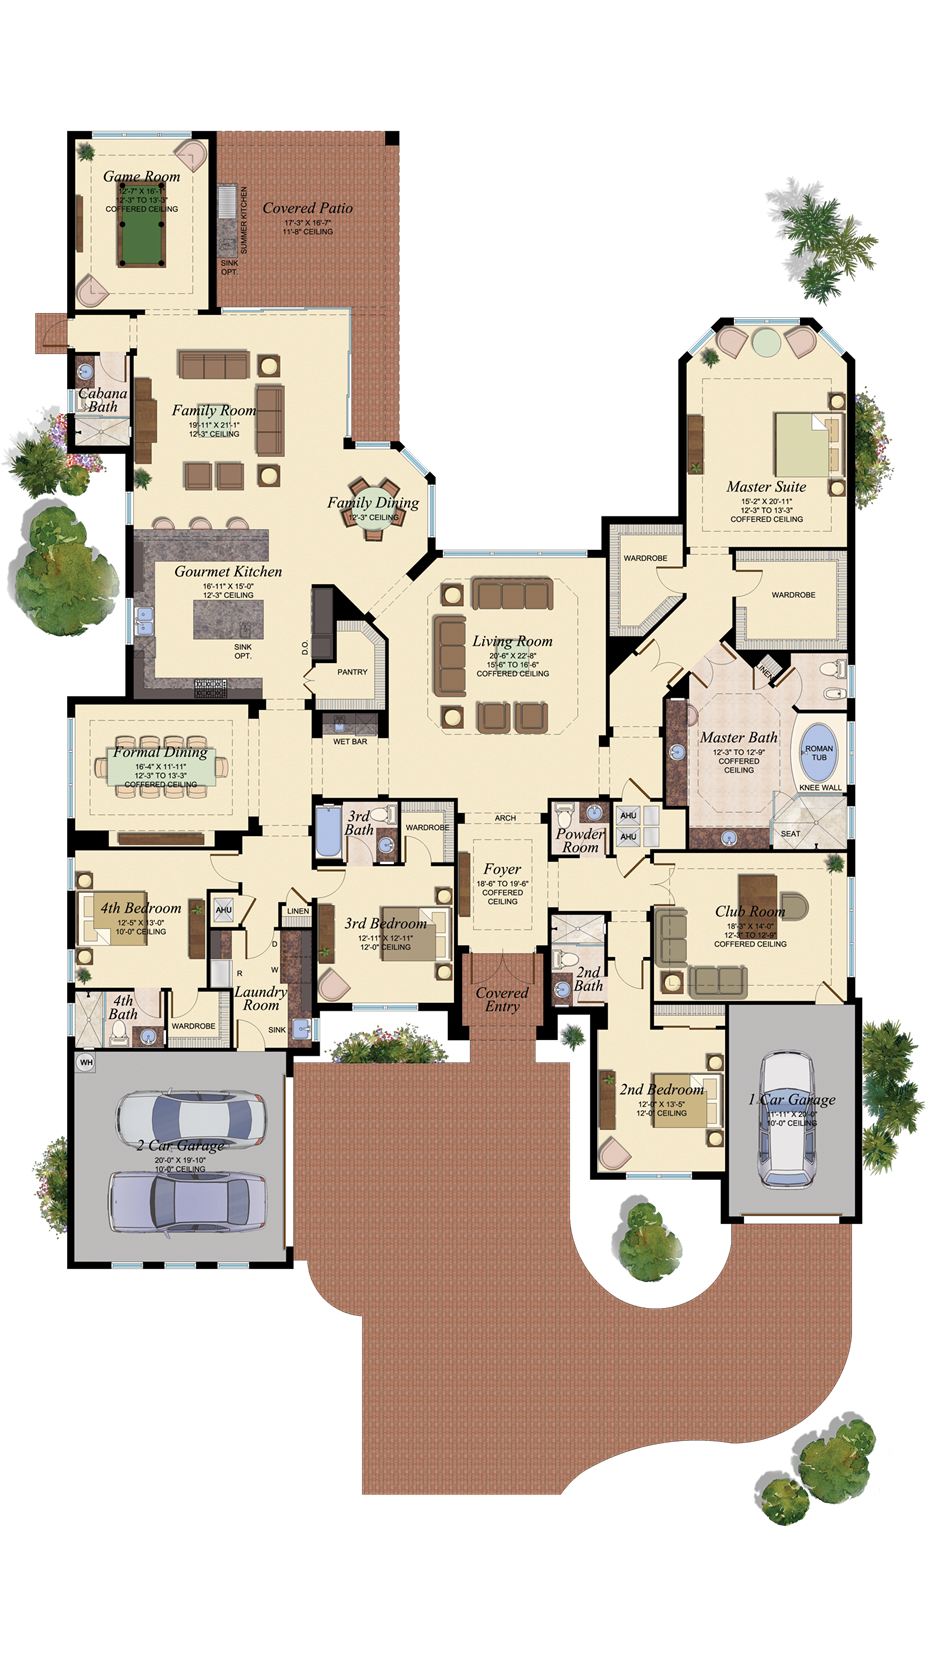 BELVEDERE/902love this floor plan, just need one game room